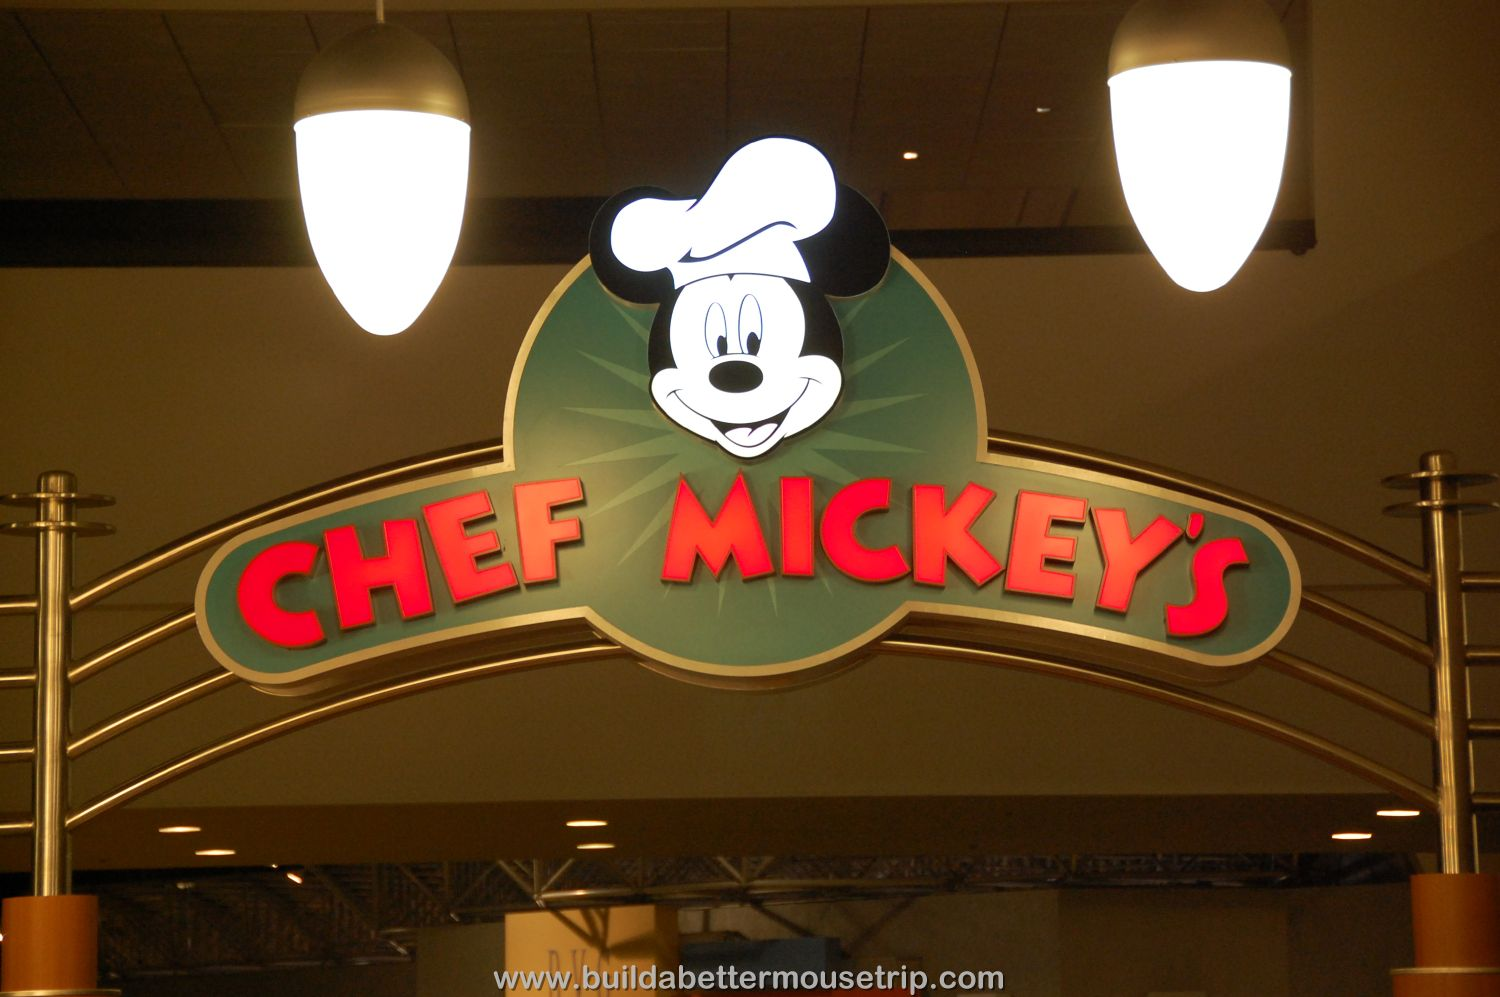 Chef Mickey's - A very popular breakfast and dinner buffet featuring classic Disney characters like Mickey and Minnie mouse.